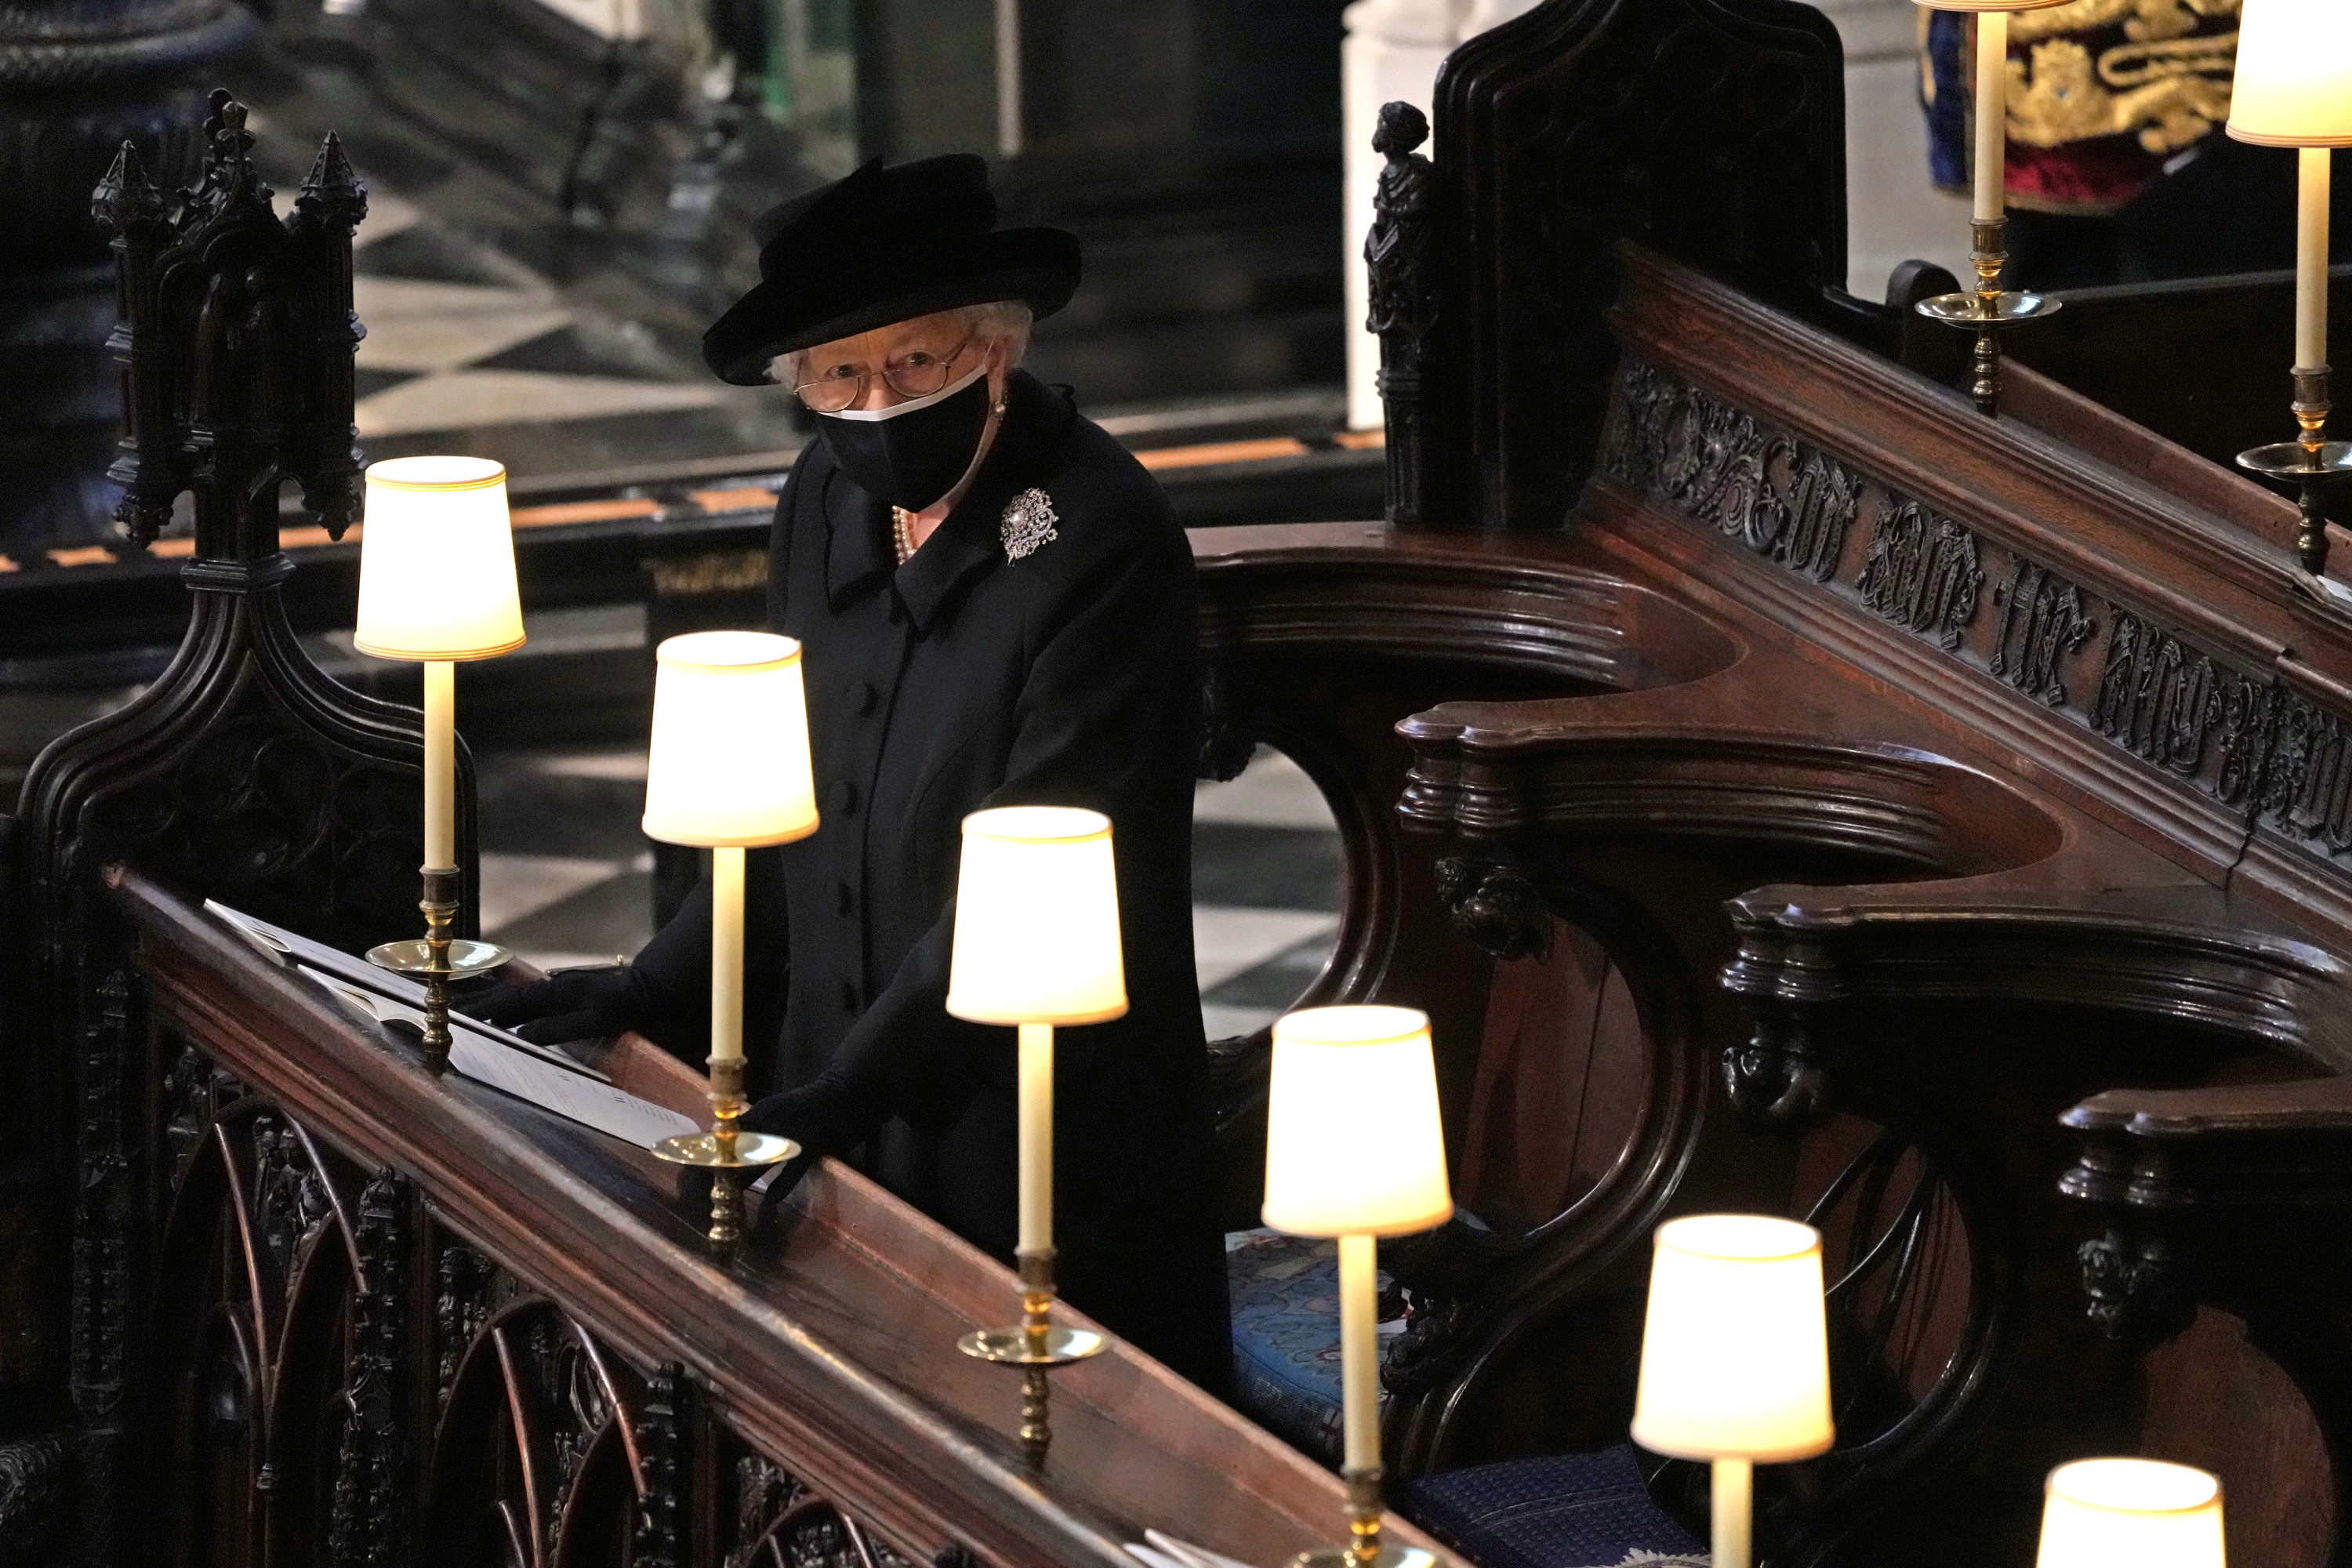 Britain's Queen Elizabeth is seen during the funeral of Britain's Prince Philip, husband of Queen Elizabeth, who died at the age of 99, at St George's Chapel, in Windsor, Britain, April 17, 2021. Yui Mok/Pool via REUTERS